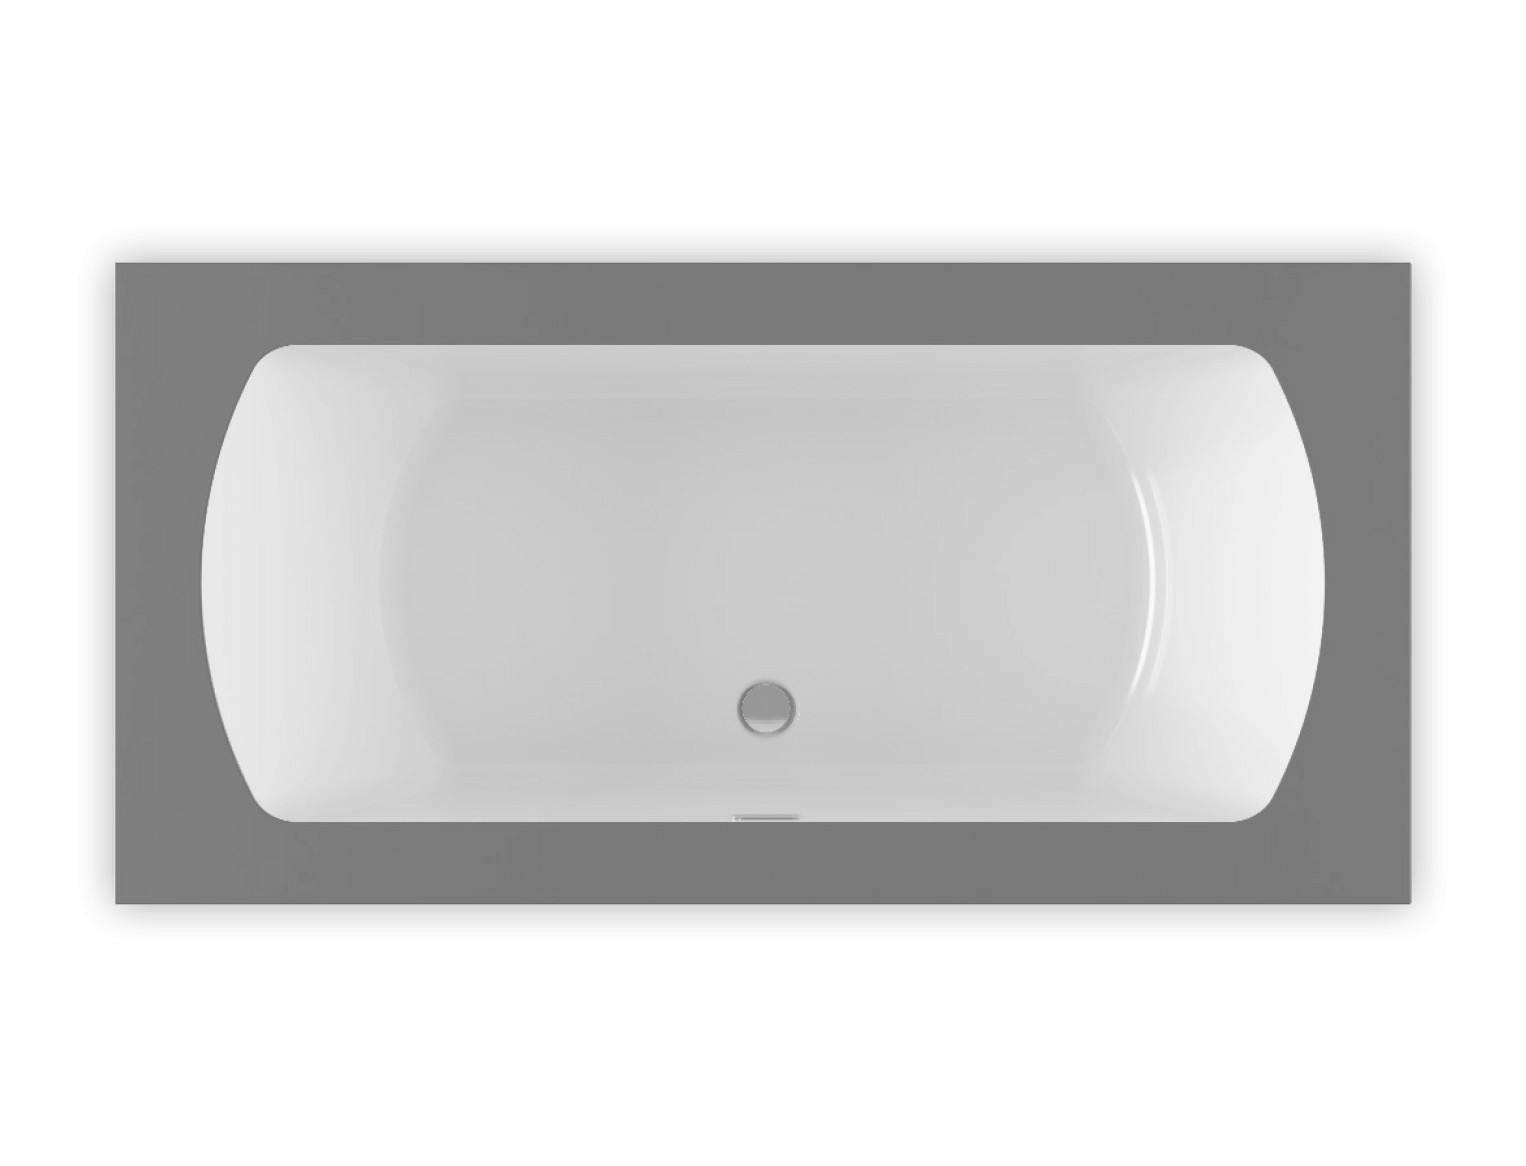 Monarch 6636 air jet bathtub for your modern bathroom